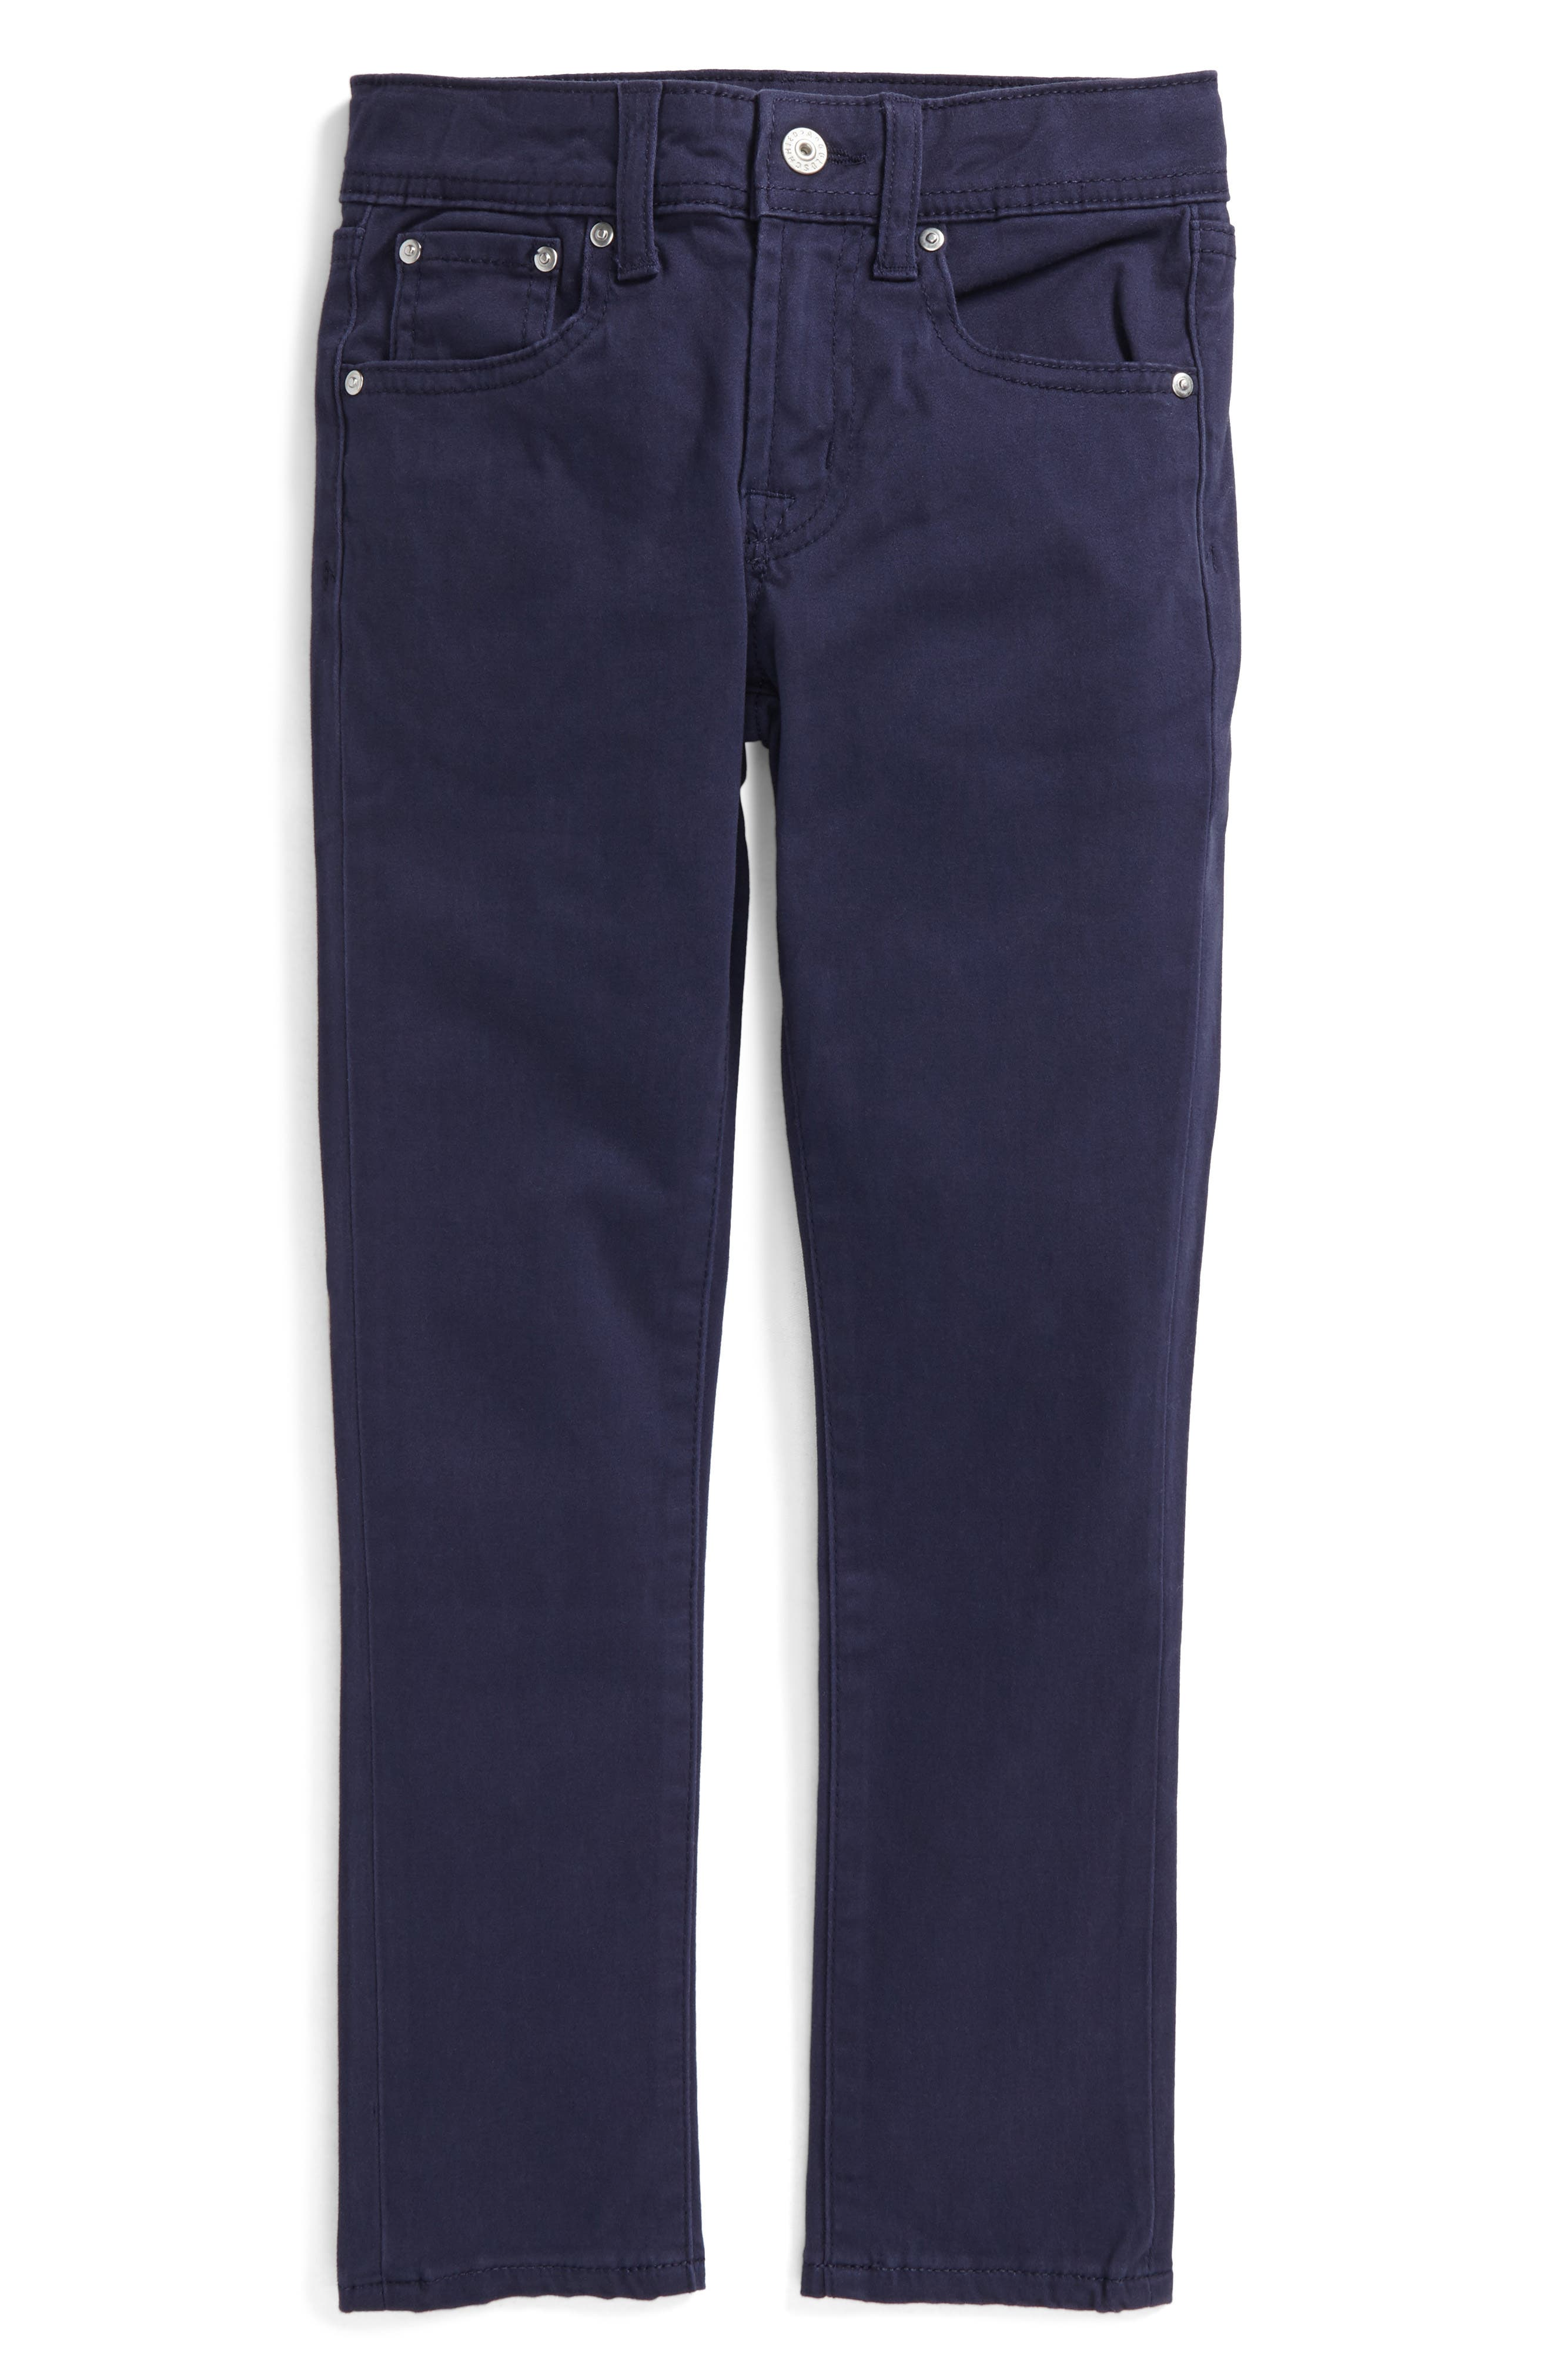 ag adriano goldschmied kids The Kingston Luxe Slim Jeans (Toddler Boys & Little Boys)